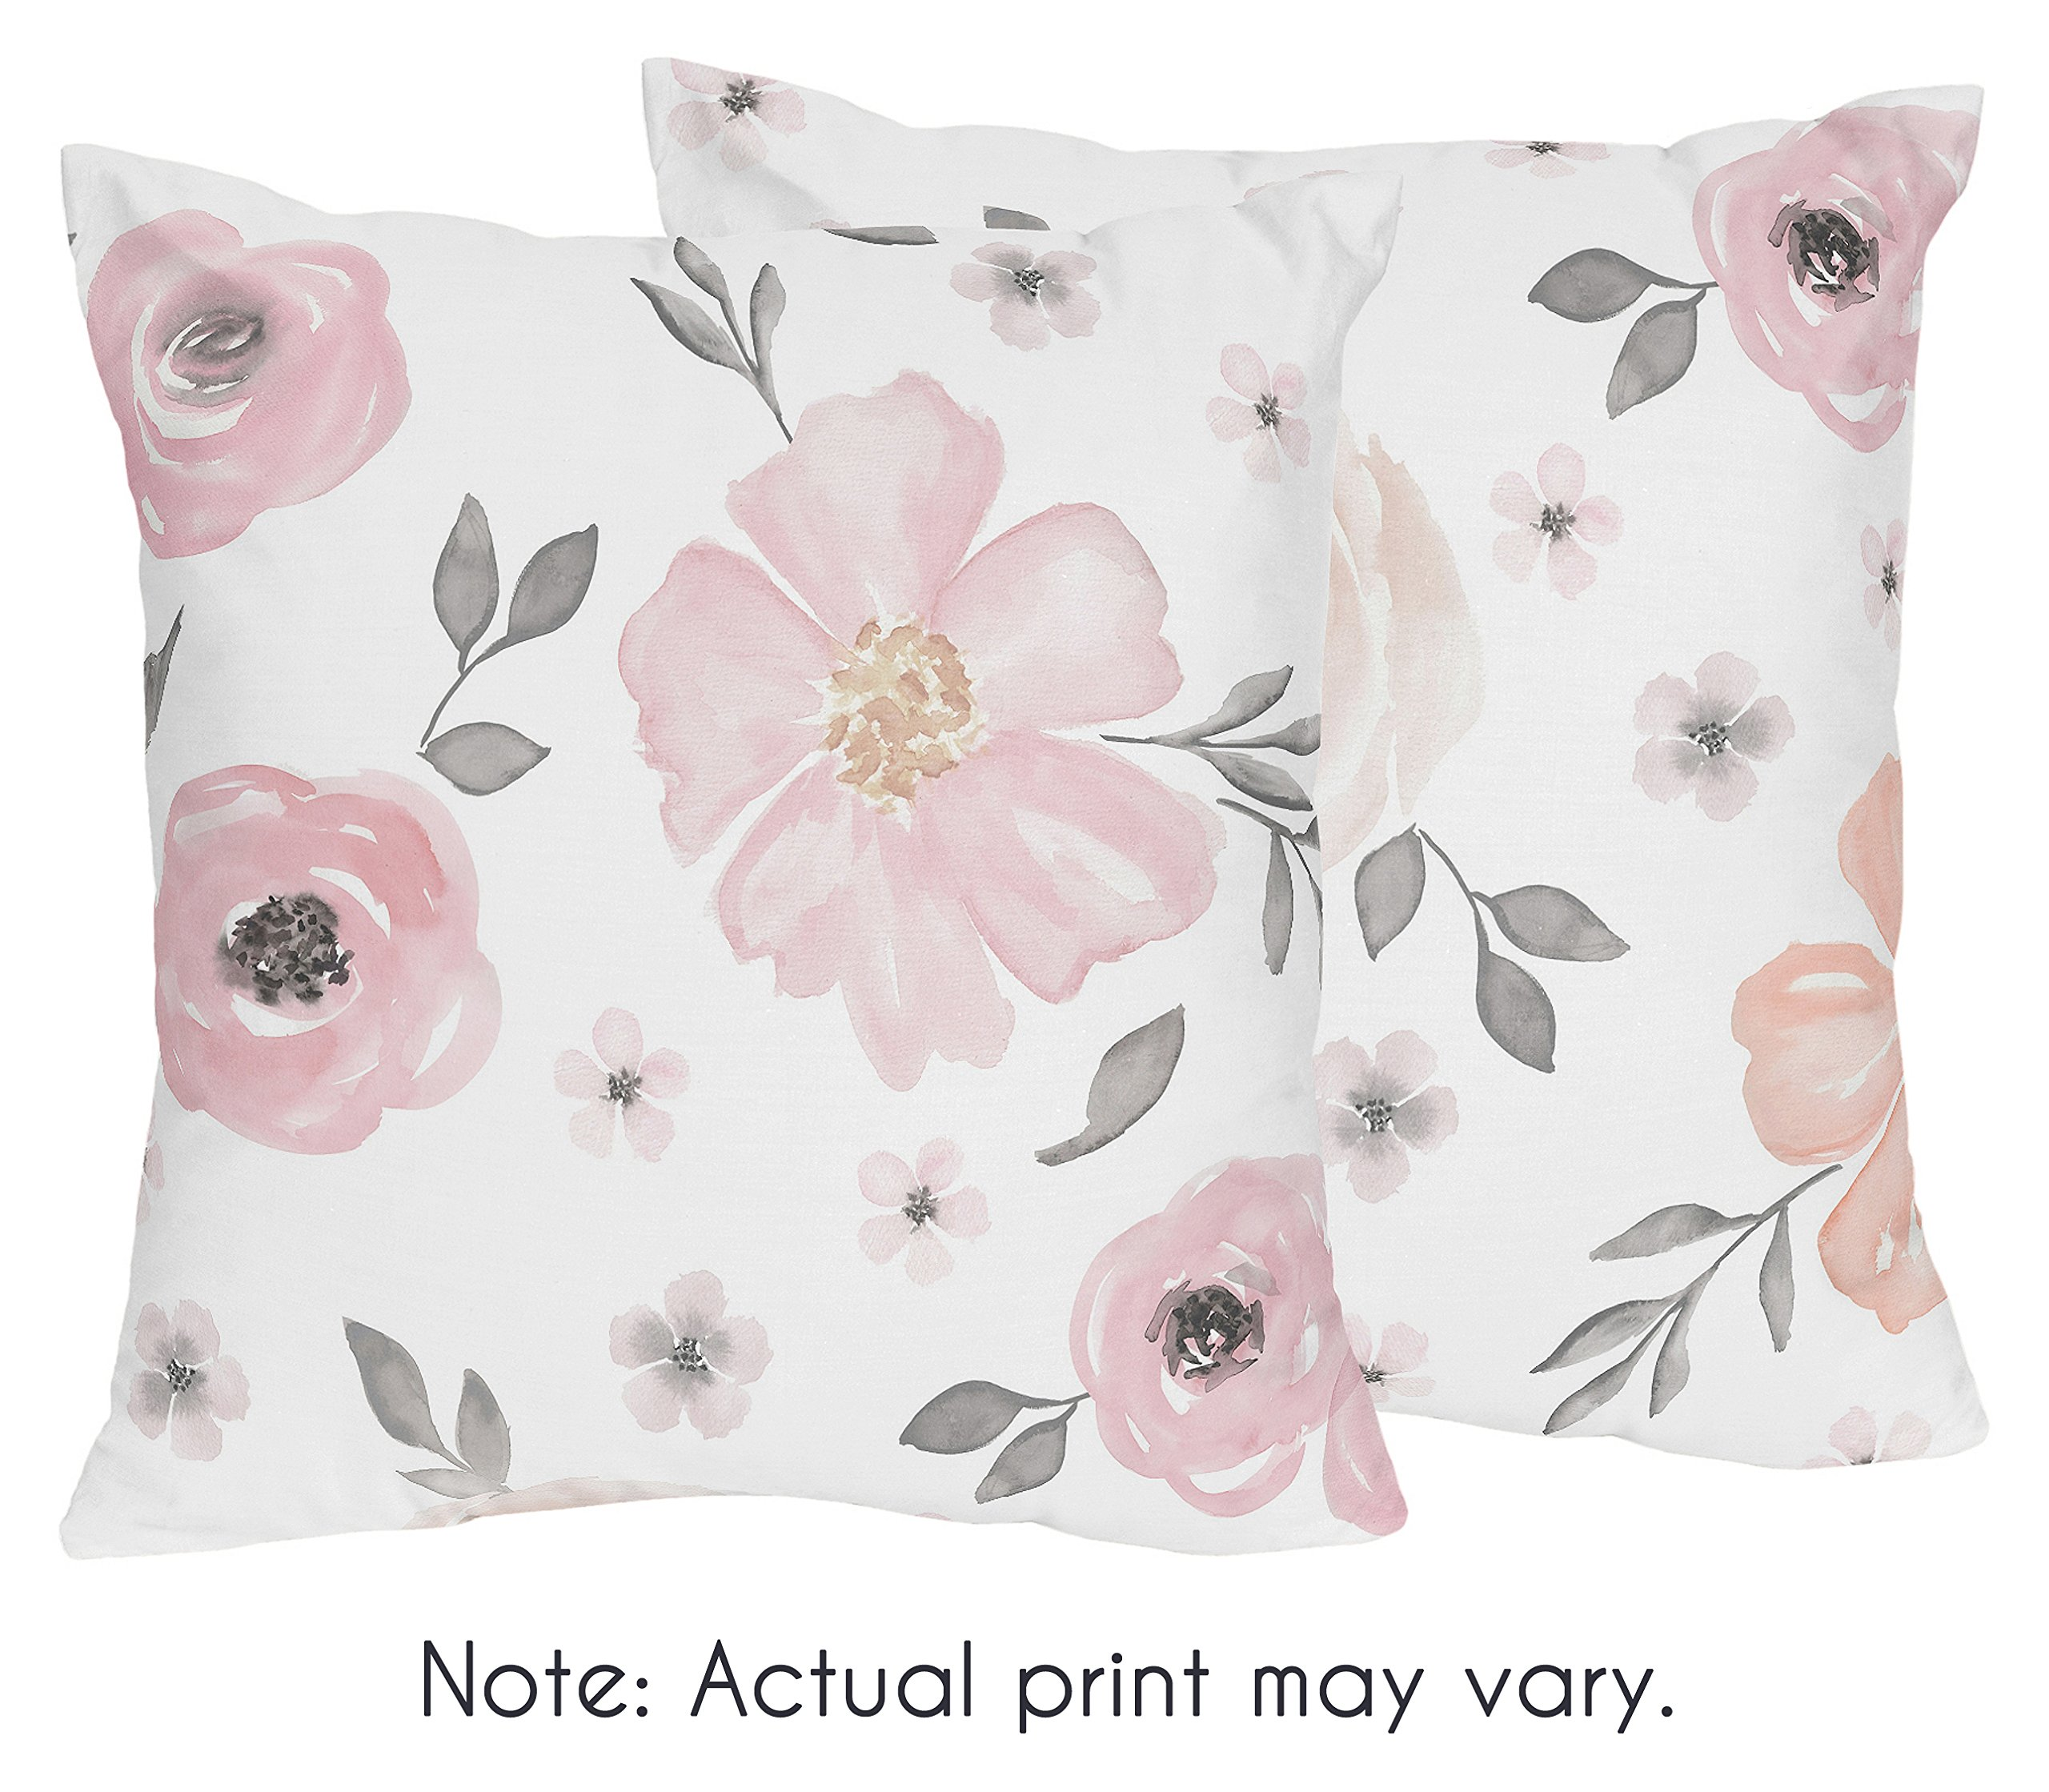 Sweet Jojo Designs 2-Piece Blush Pink, Grey and White Decorative Accent Throw Pillows for Watercolor Floral Collection by Sweet Jojo Designs